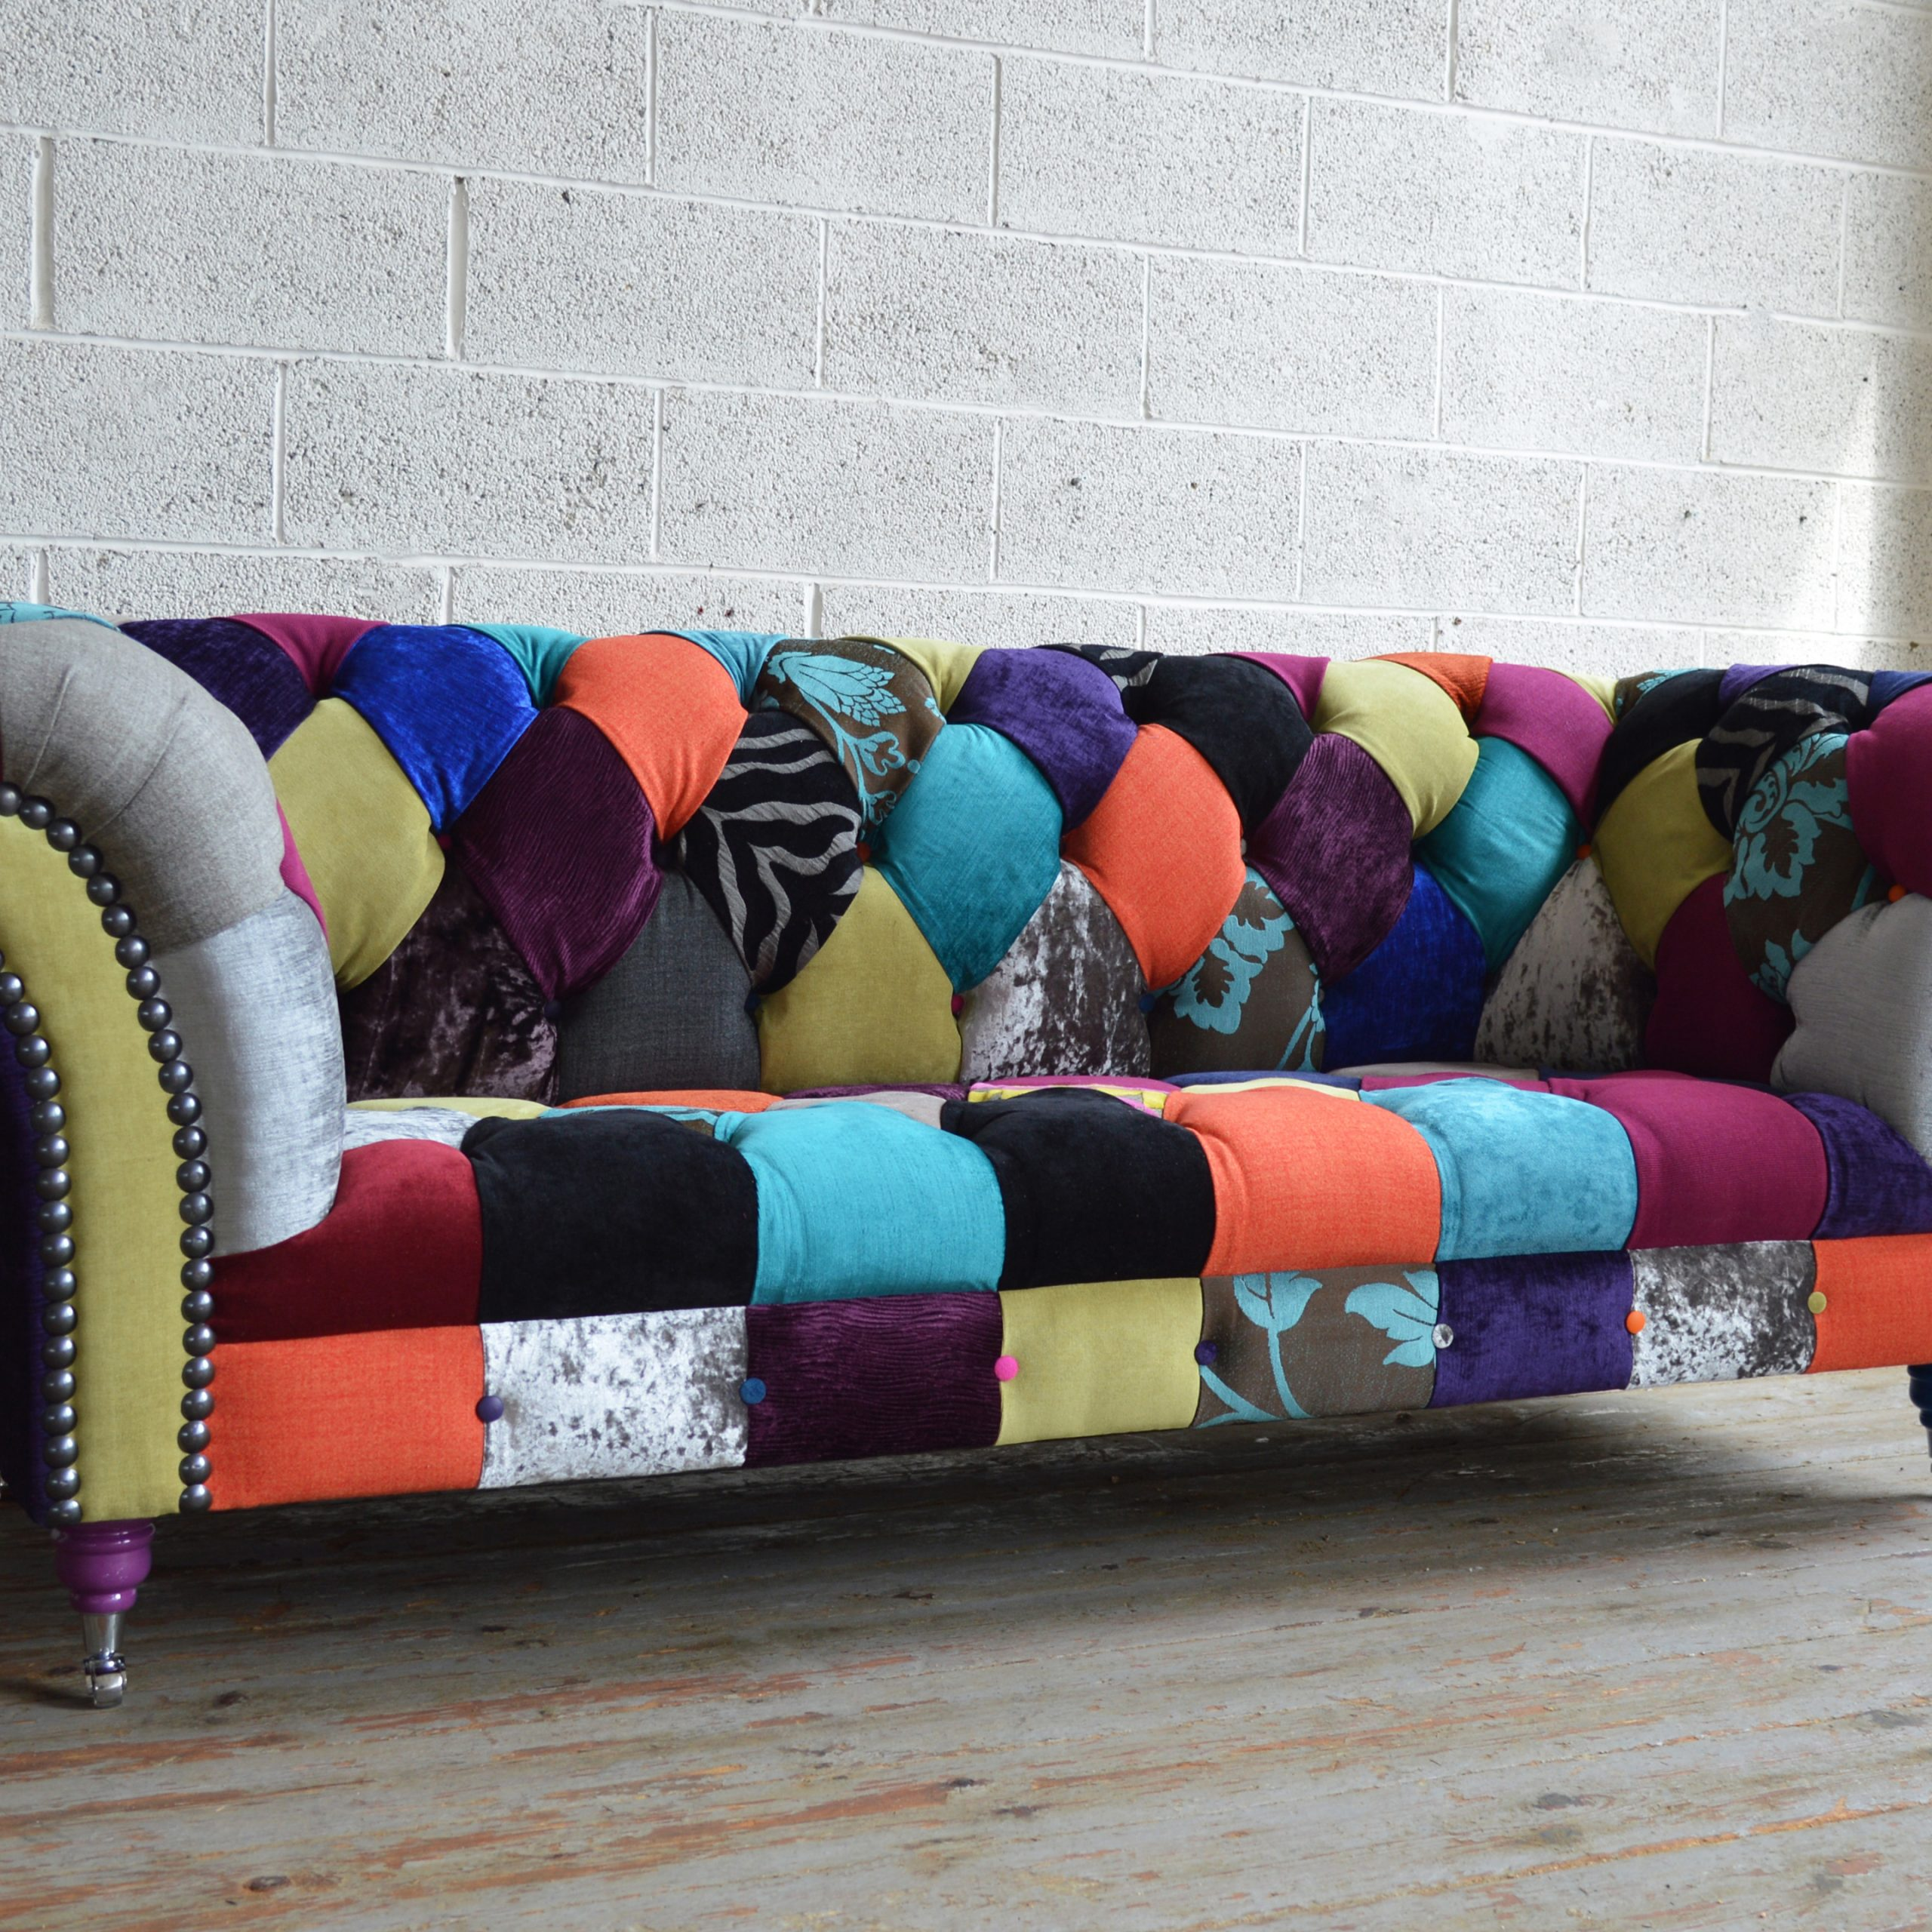 Brighton Patchwork Chesterfield Sofa | Abode Sofas With Chesterfield Sofas (View 15 of 15)